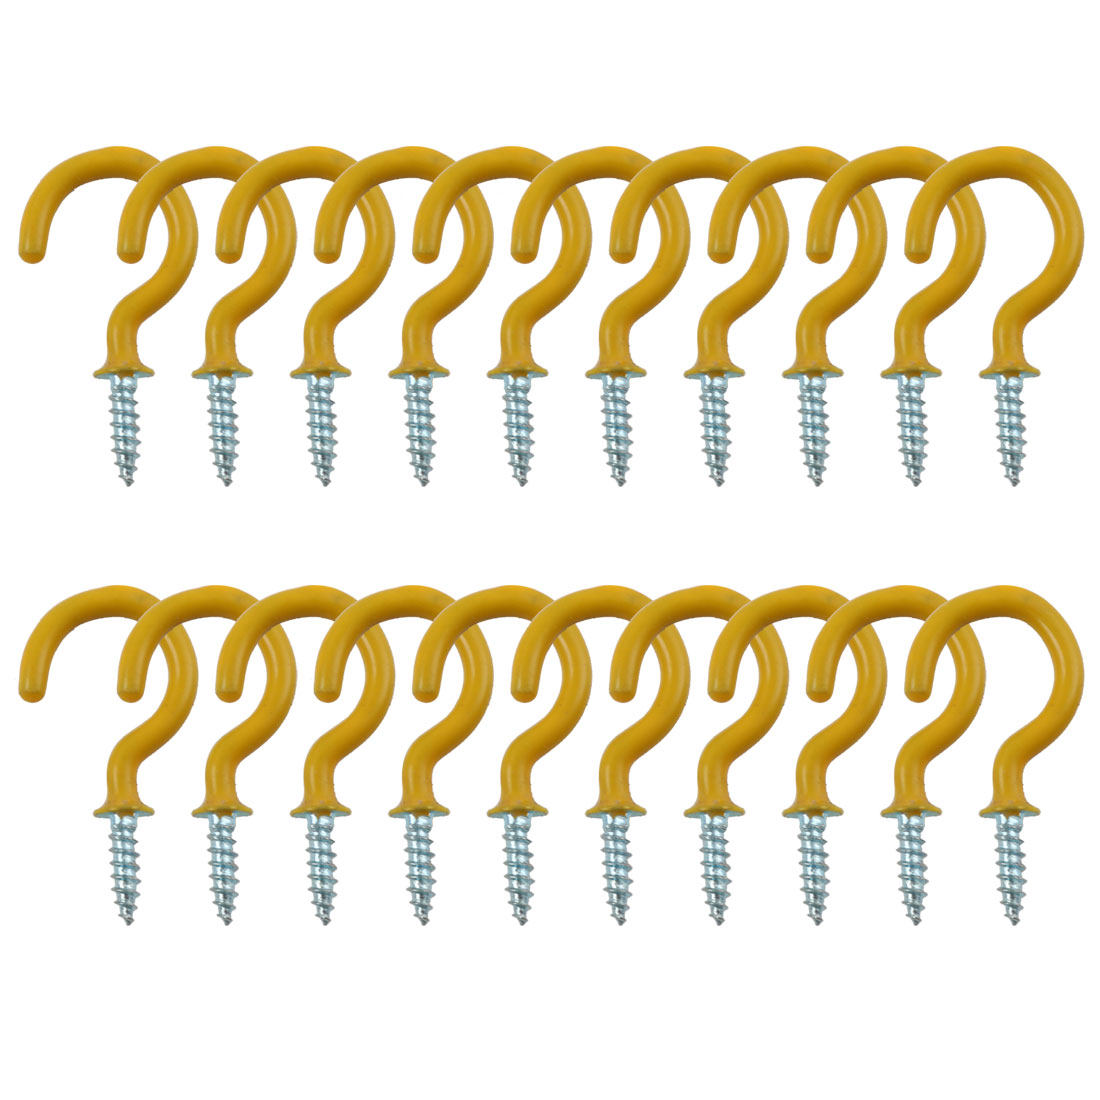 20pcs Cup Ceiling Hooks 1 Inch Metal with Vinyl Coated Screw in Holder Yellow